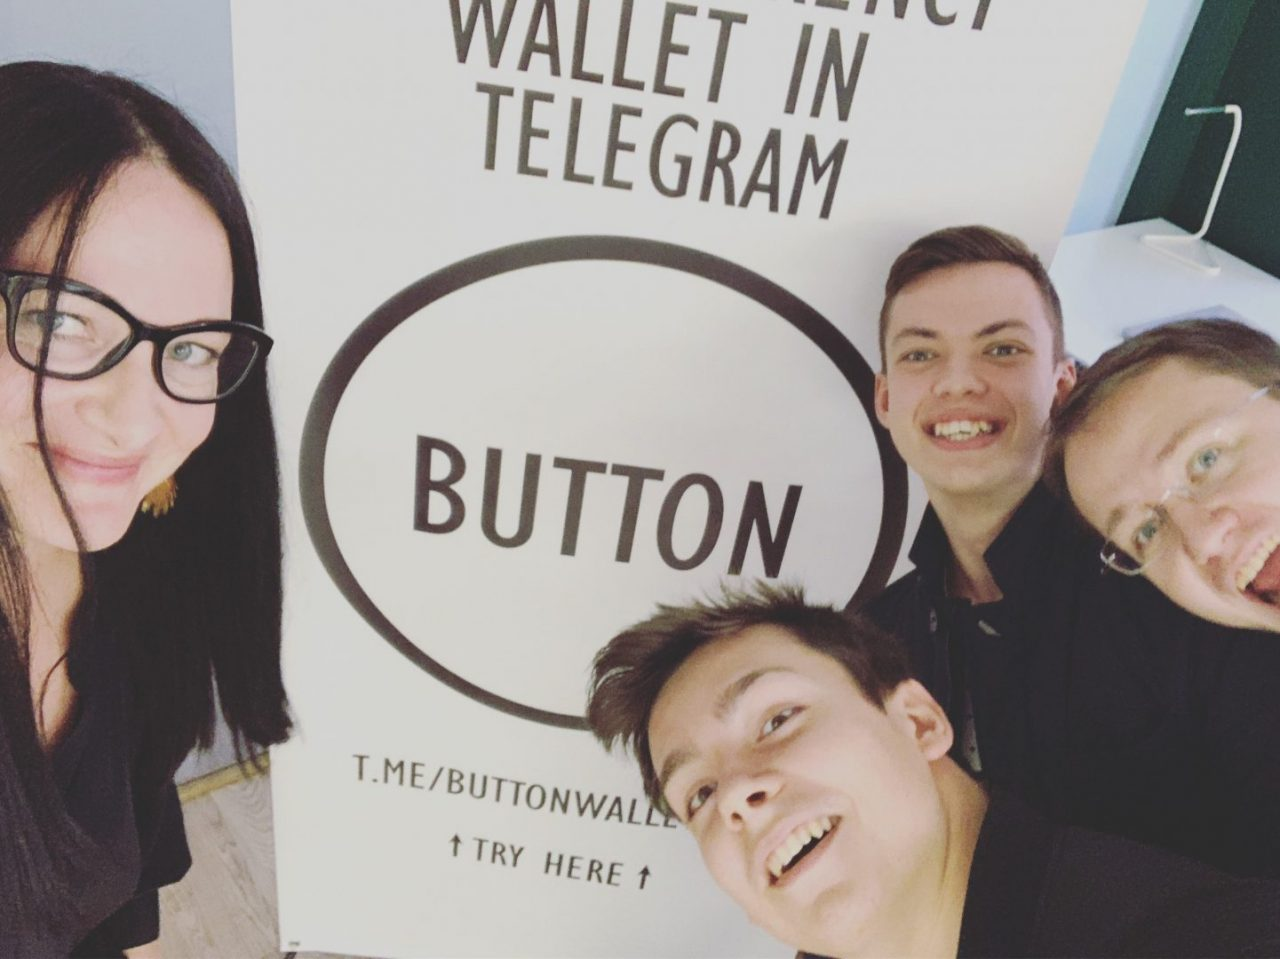 From now on Button's multi-currency crypto wallet is built and comes pre-installed on Telegram messenger